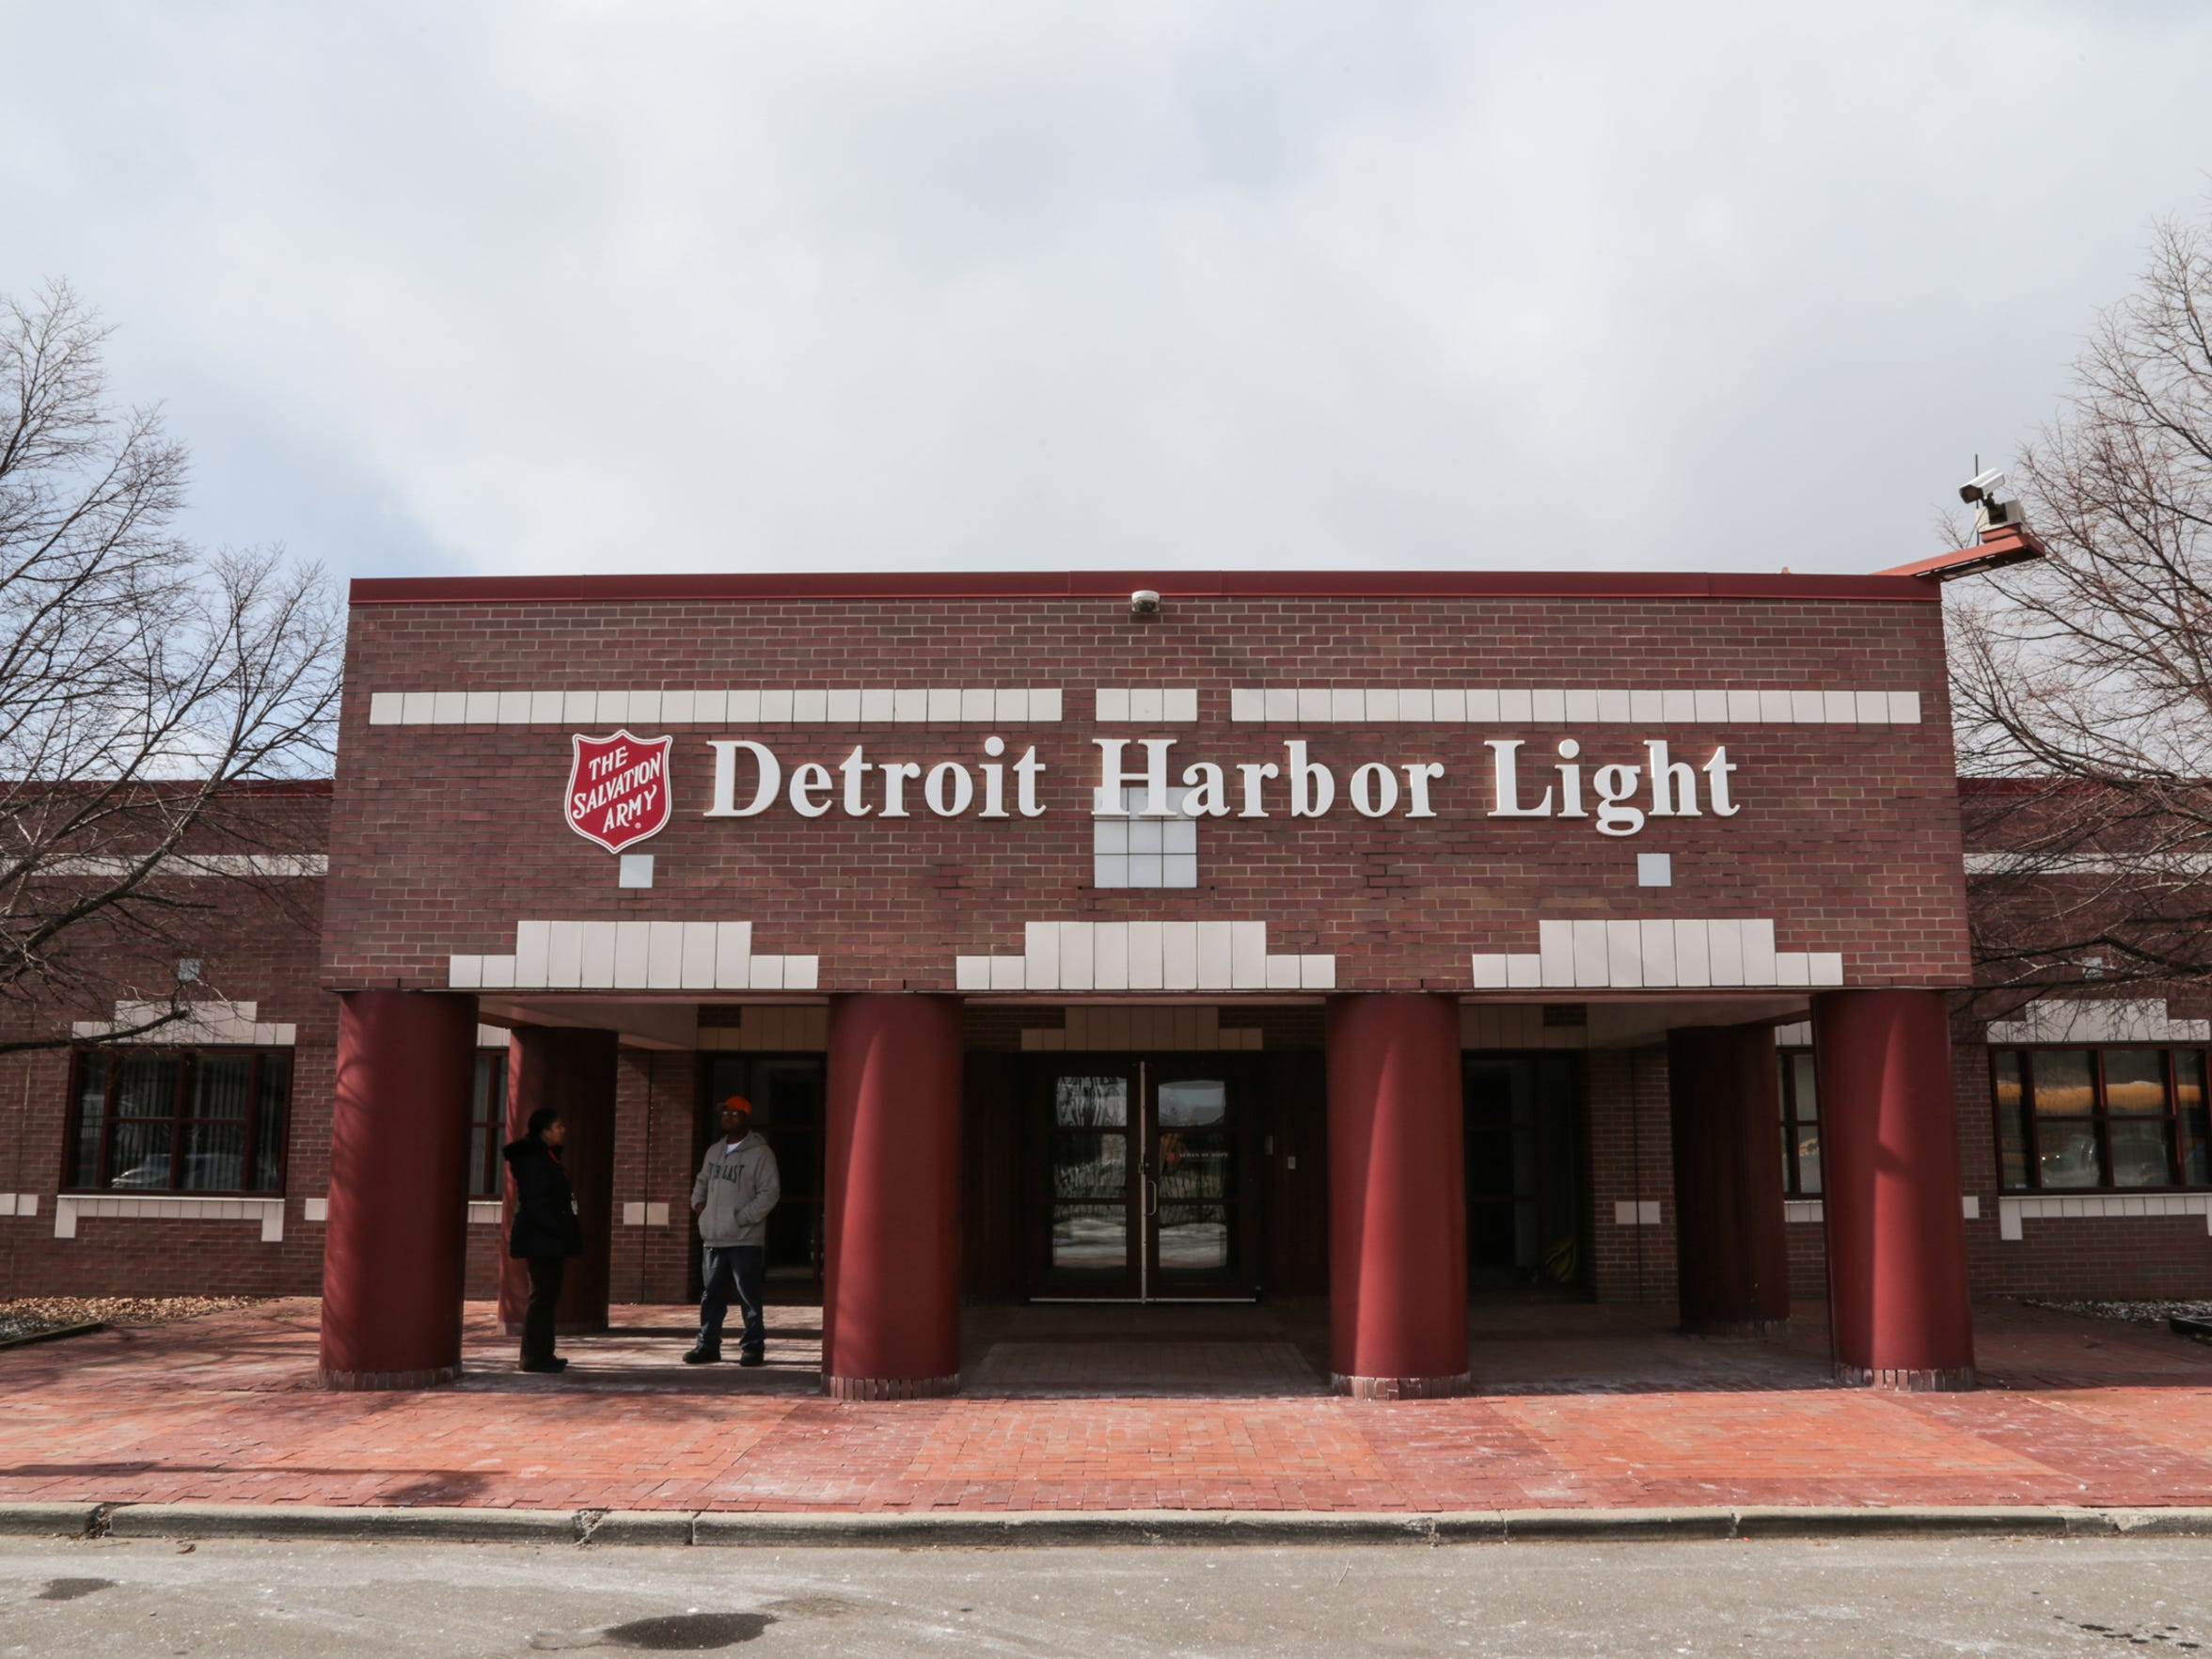 The Salvation Army's Harbor Light Center in Detroit is the headquarters for the Bed and Bed program. Every day before dawn, volunteers make lunch meat sandwiches while a chef prepares batches of warm soup, stew or chili to be served in little foam containers out of three trucks on three routes through the city's east side, west side and a route that straddles both near downtown.